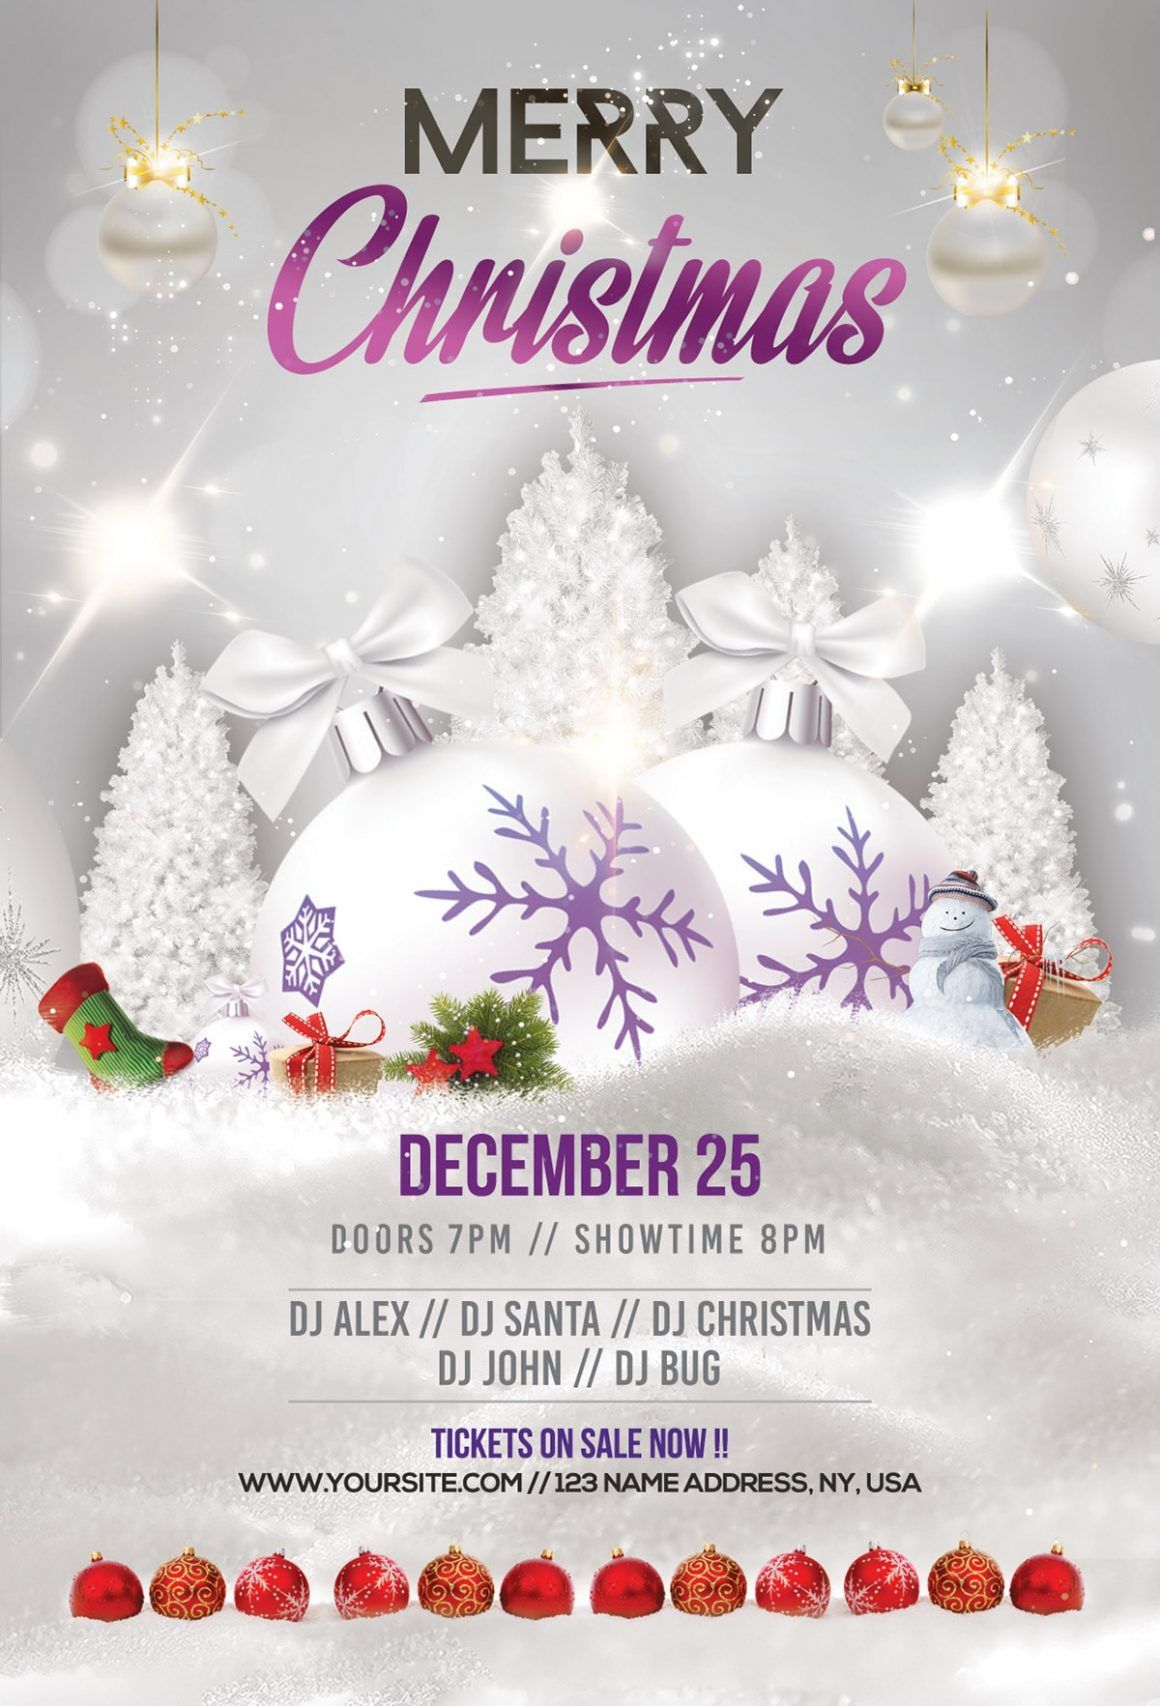 005 Striking Free Christma Flyer Template Example  Templates Holiday Invitation Microsoft Word PsdFull